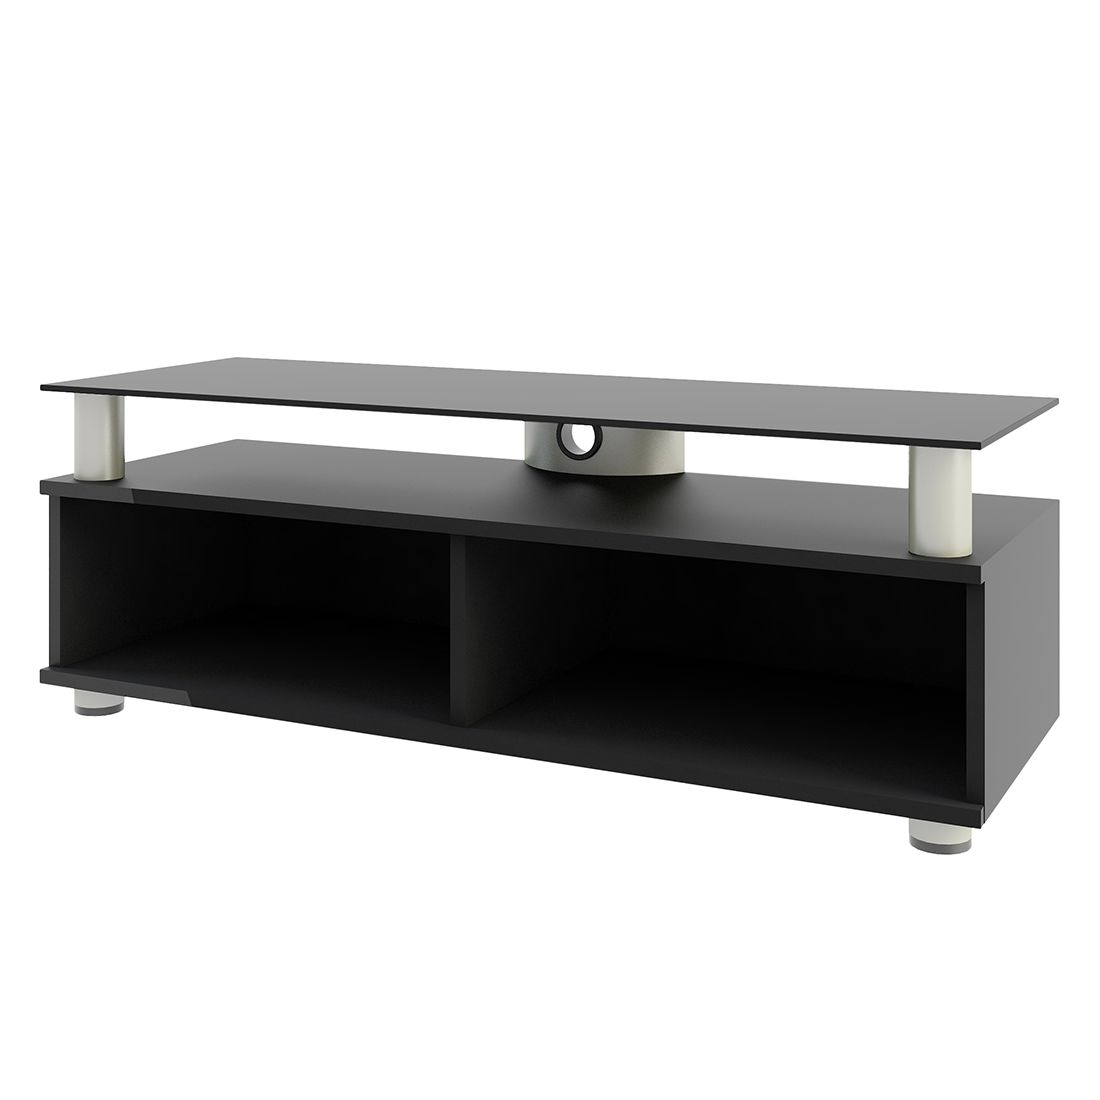 rack tv lowboard clunis mdf aluminium esg sicherheitsglas weisslack vcm jetzt kaufen. Black Bedroom Furniture Sets. Home Design Ideas